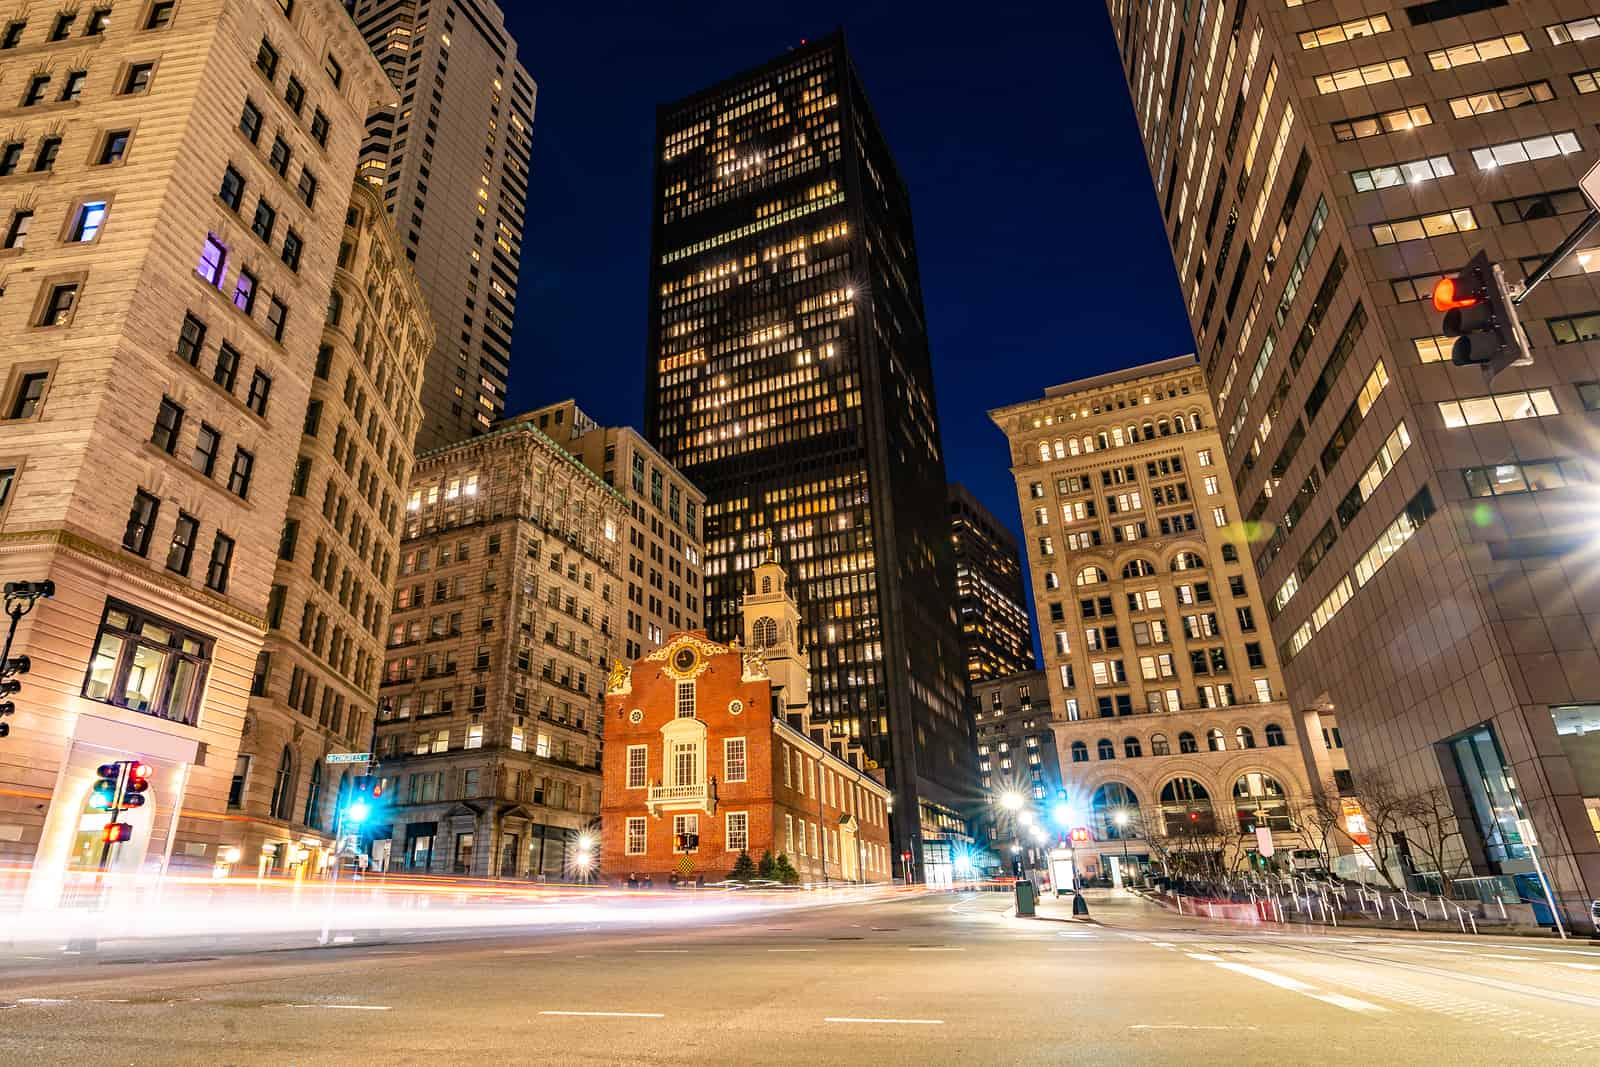 best thingds to do in boston - Boston Old State House with boston building skyline at Boston Downtown, MA USA.